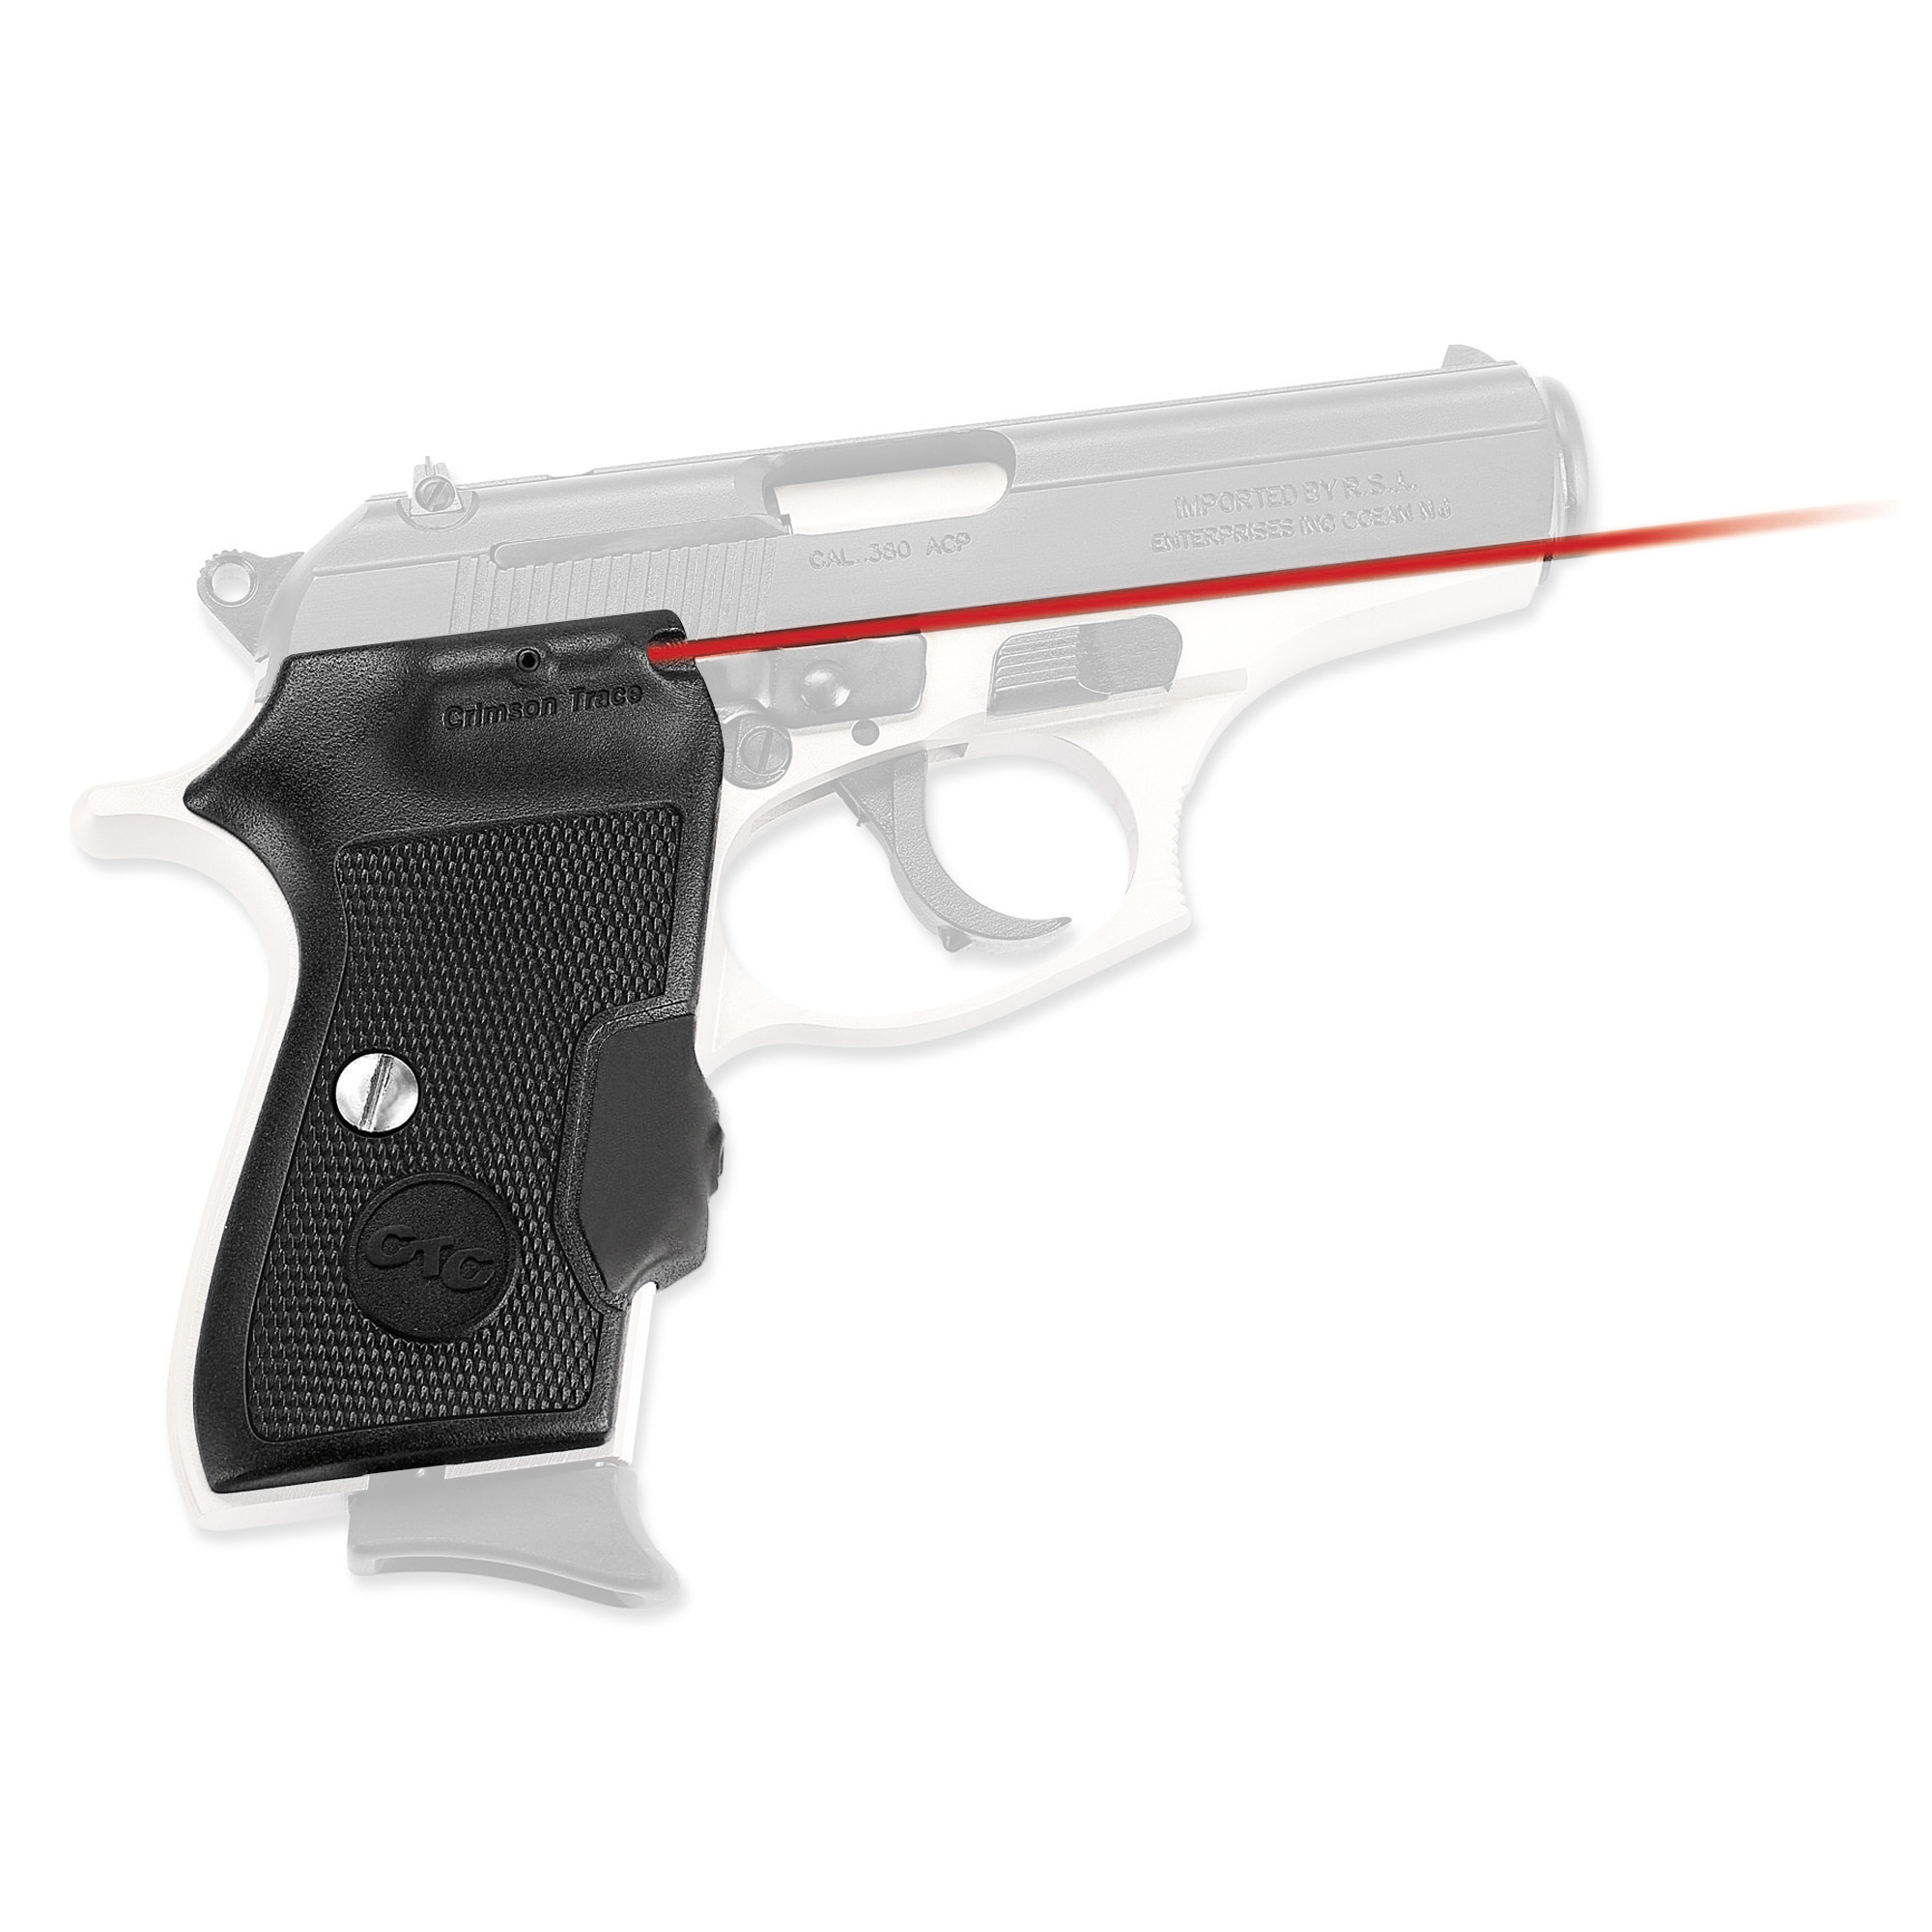 The LG-442 laser sights for the small but venerable Bersa Thunder and Firestorm .380 pistols are designed to maximize your secure firing grip on the pistol. Laser activation is instinctive with a rubber overmold front pressure switch in the Lasergrip(R) that springs to life has you hold the weapon in a natural firing position. Hard polymer side grip panels with deep checkering grooves promote a comfortable grip and smooth draw for your Bersa pistol.